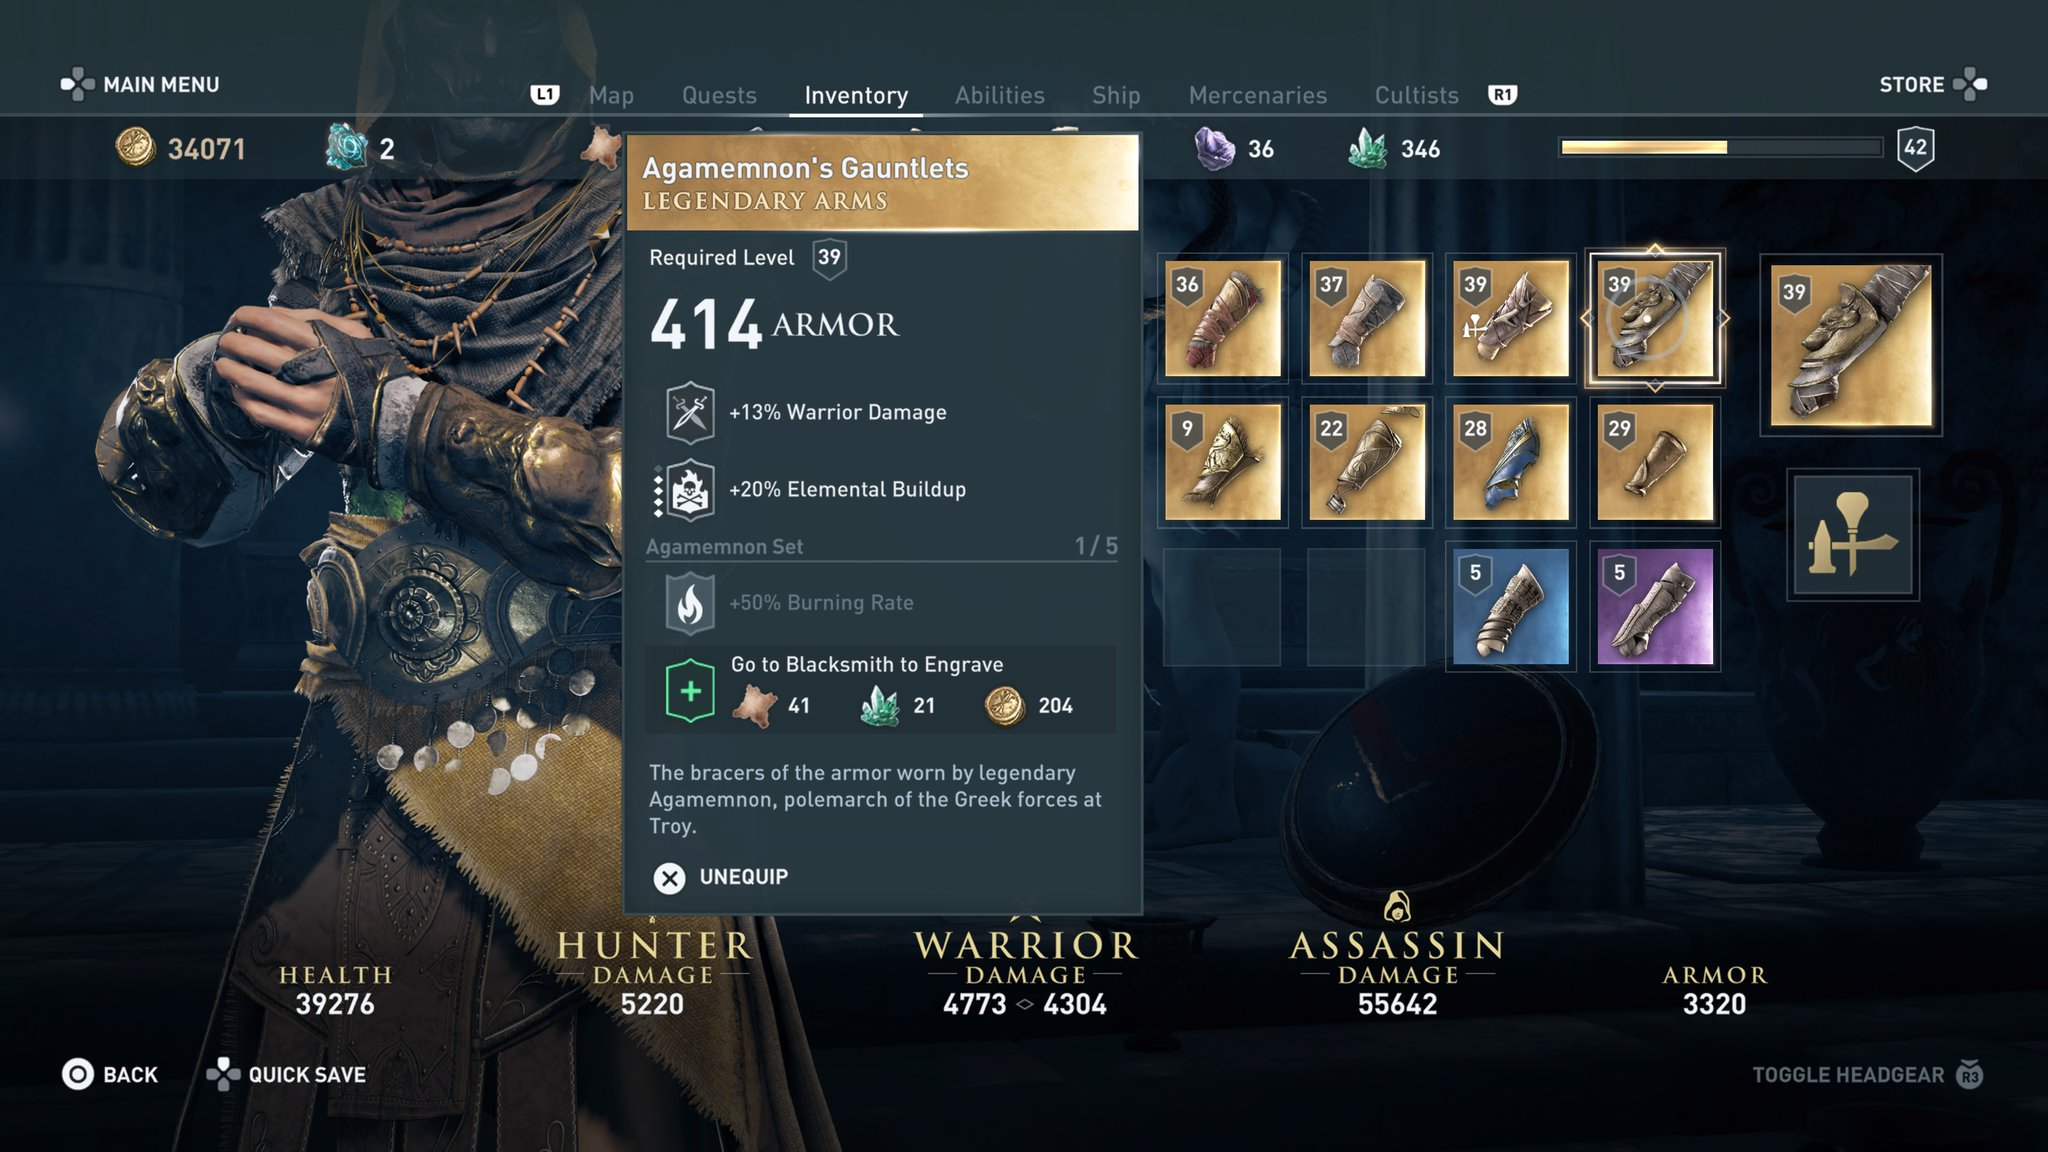 Assassin's Creed Odyssey Armor - How to Get the Best Armor | USgamer